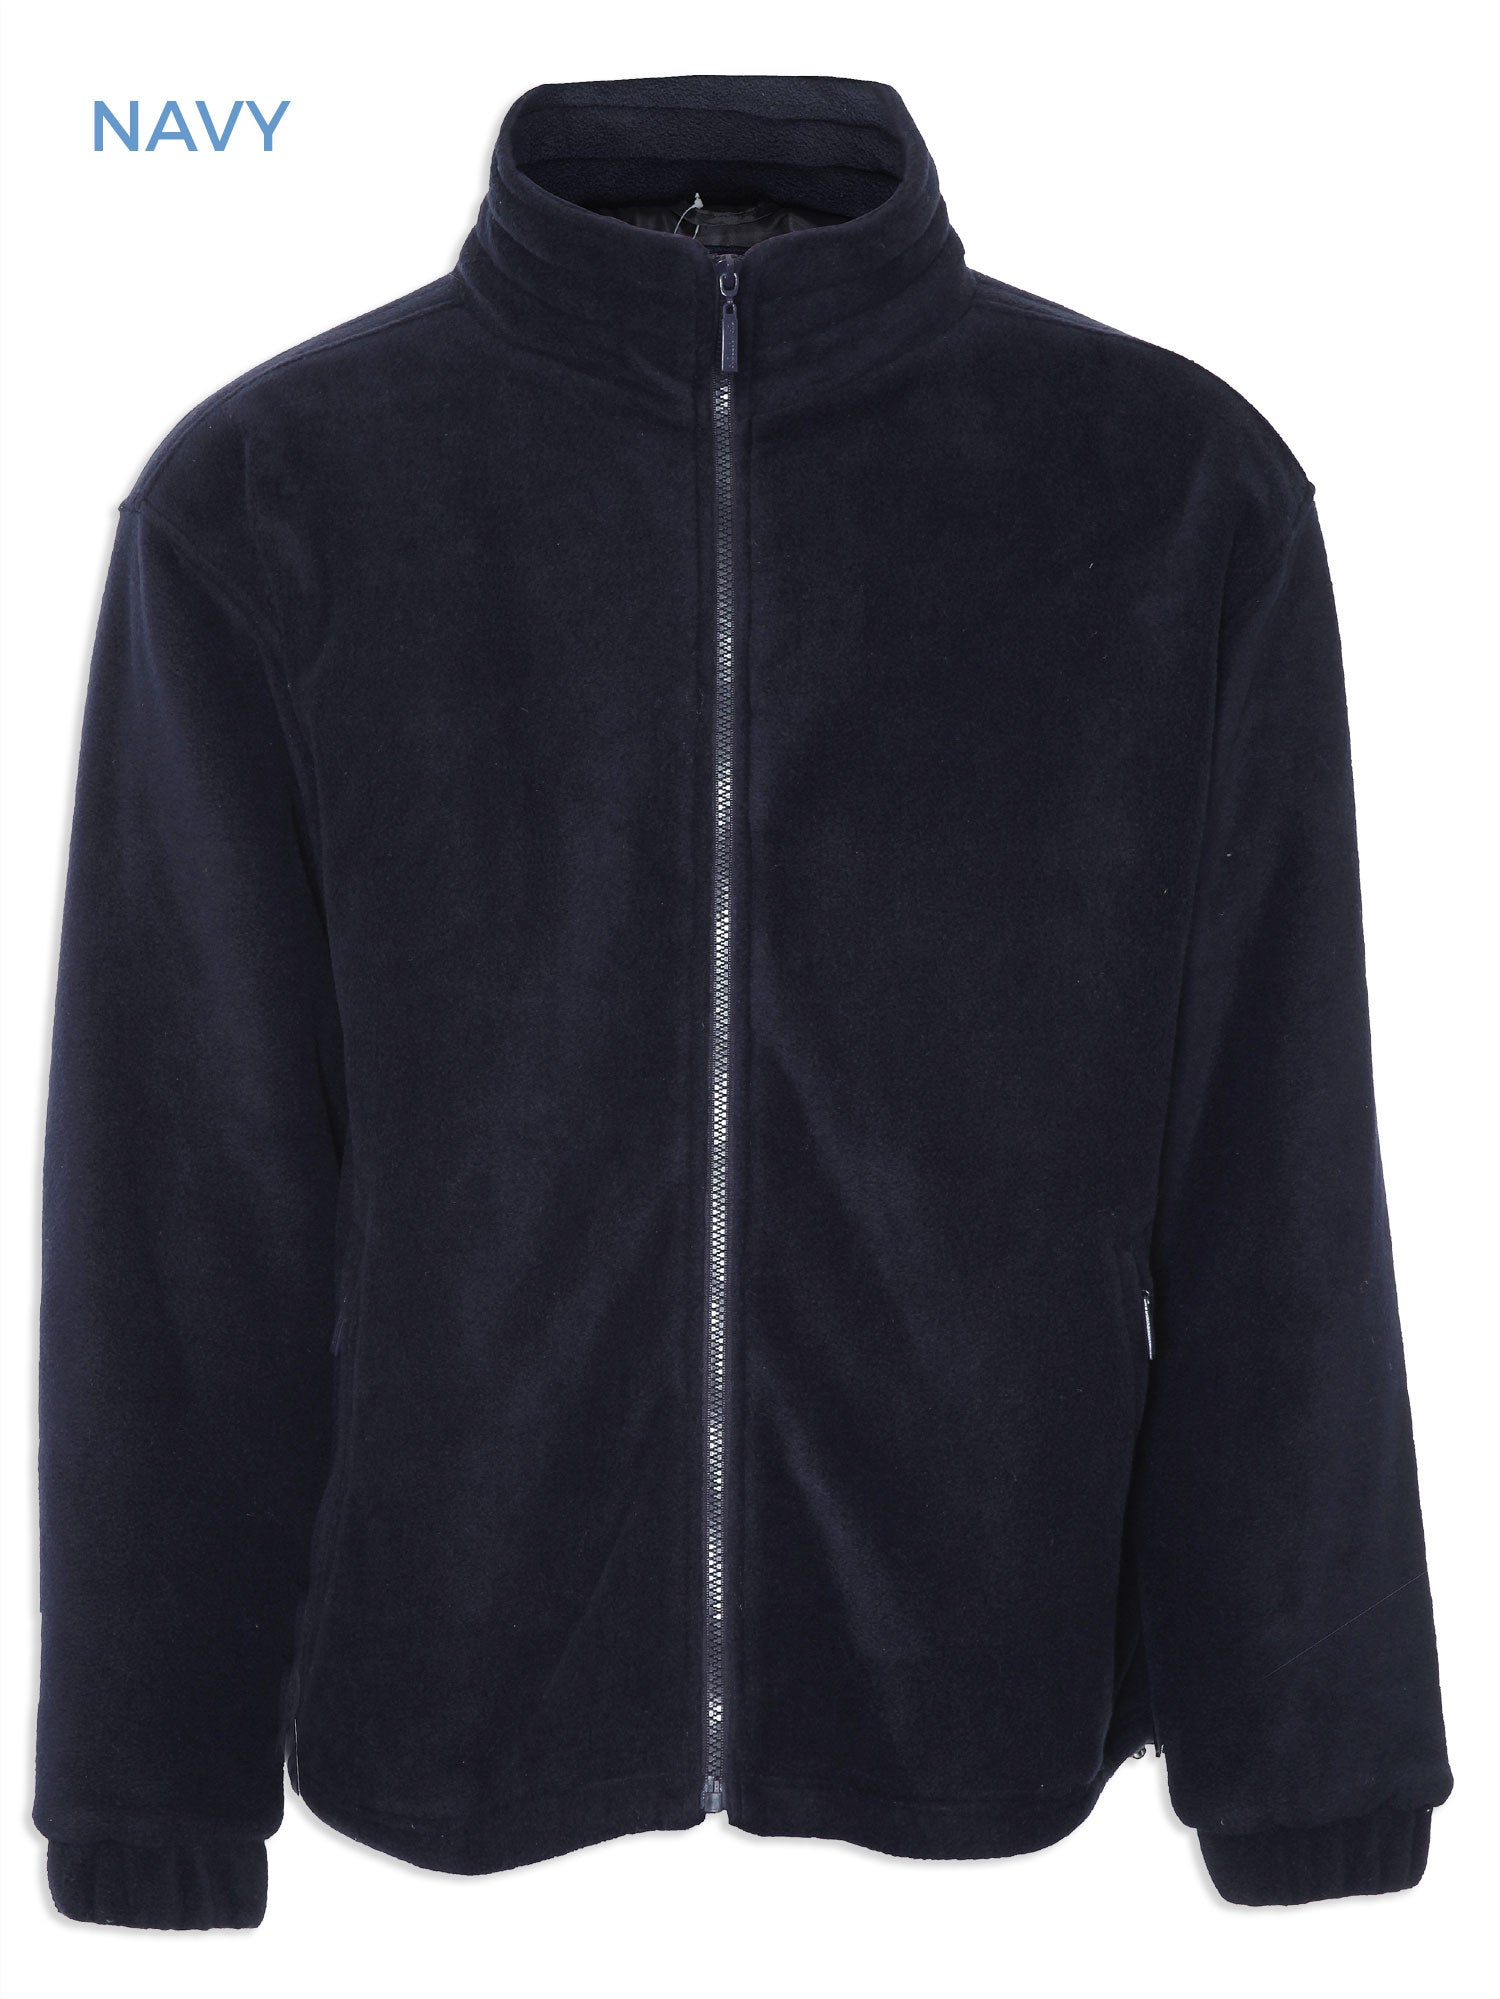 Glen Lined Fleece Jacket from Champion in navy